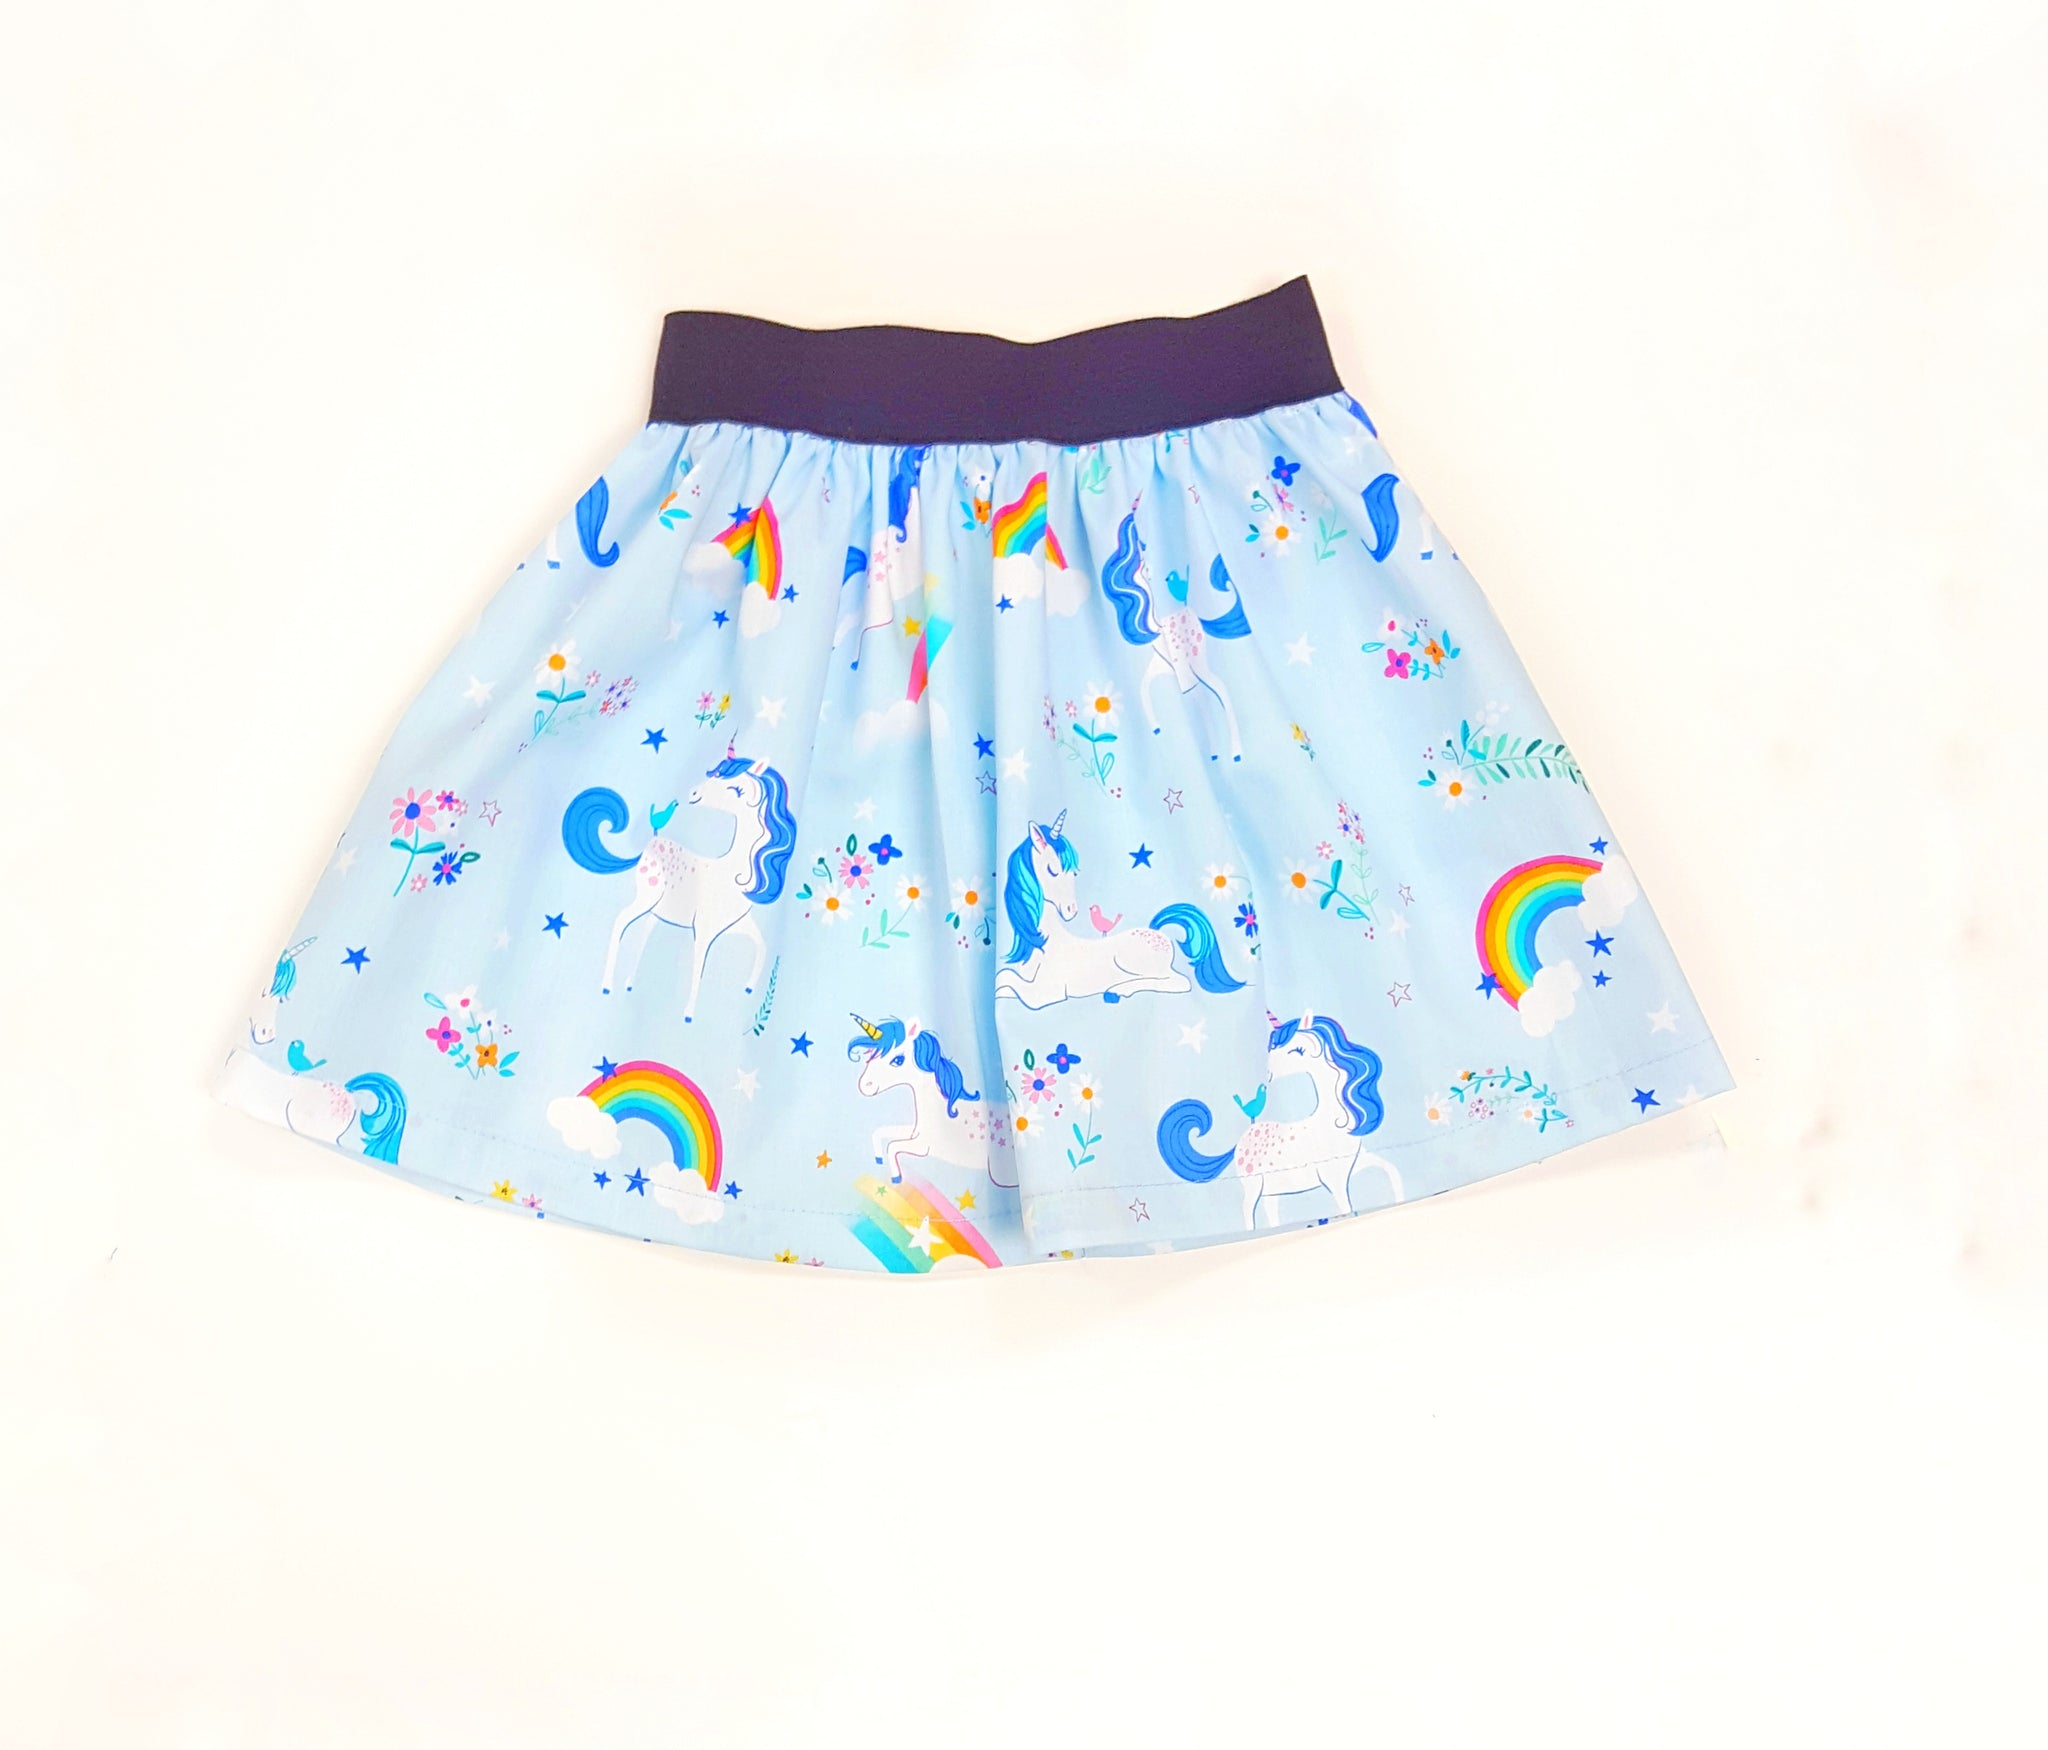 Unicorn Garden Skirt